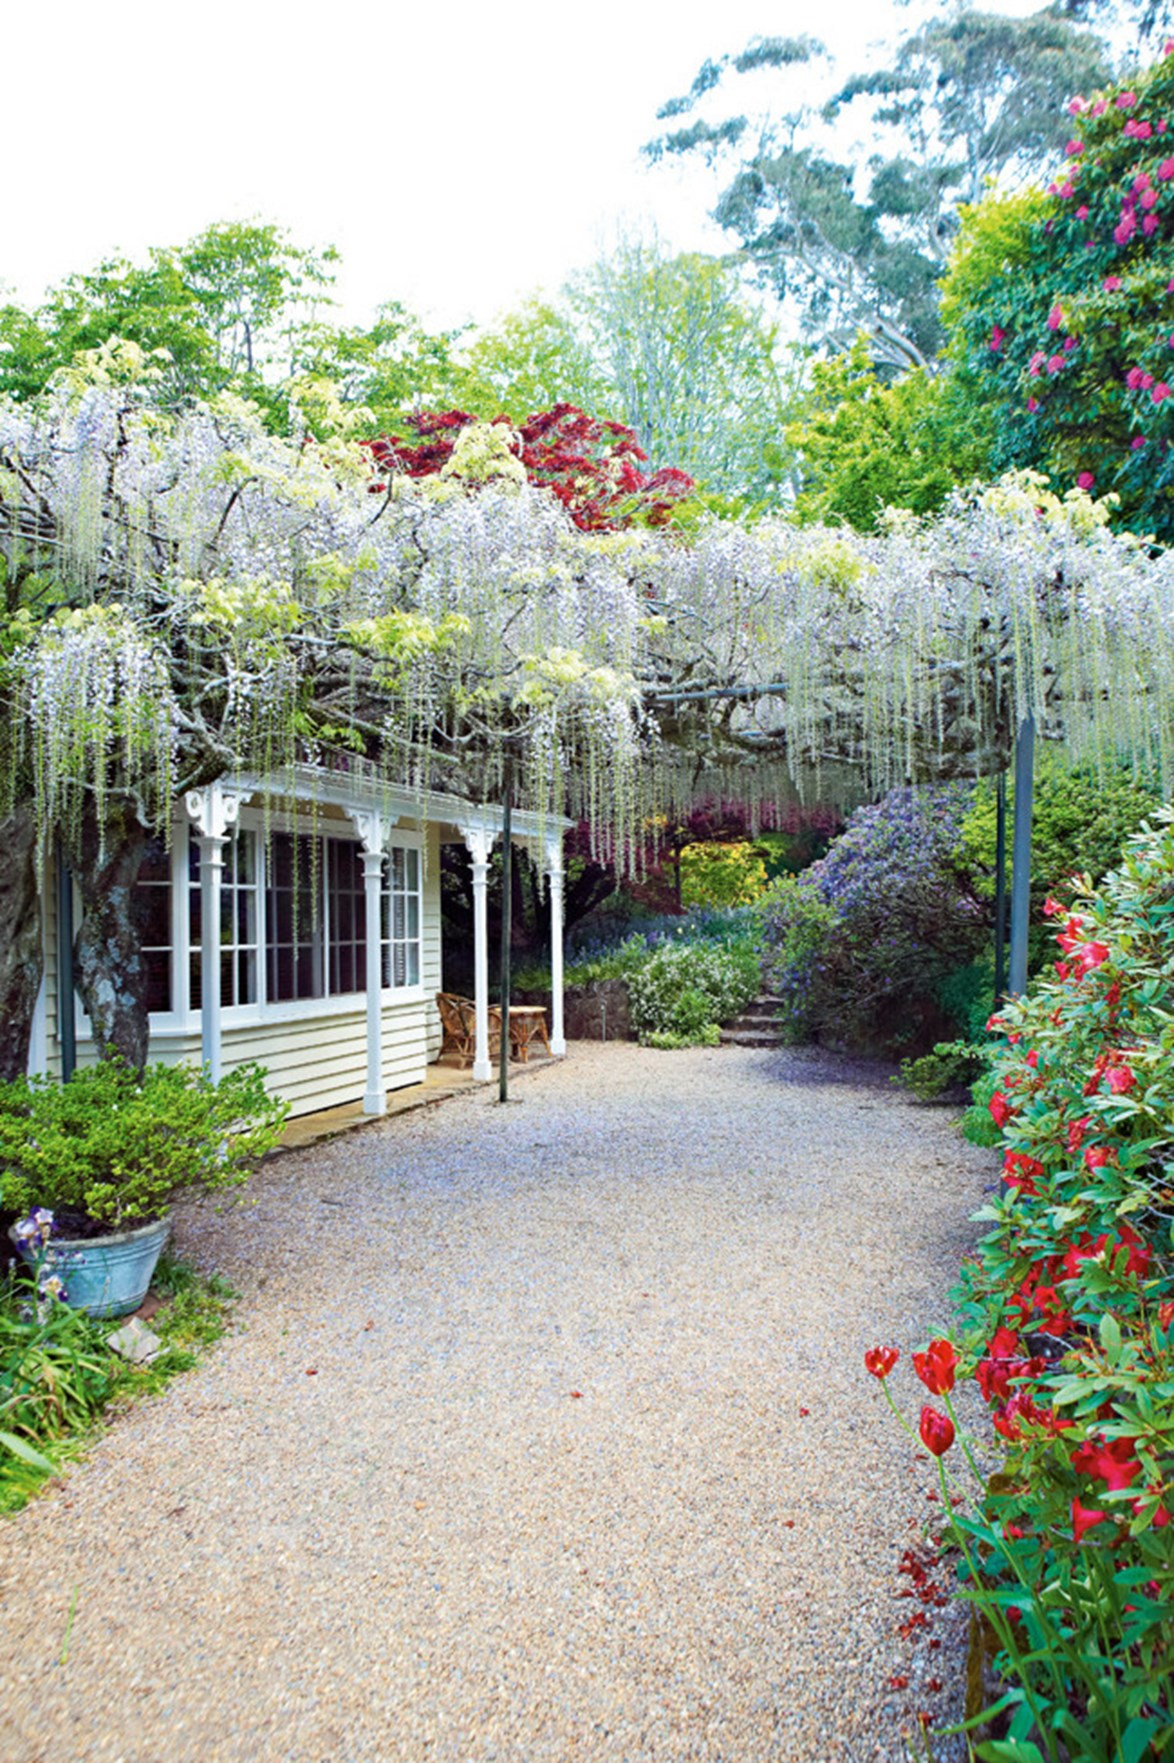 "[Nooroo Garden on Mount Wilson](https://www.homestolove.com.au/mount-wilson-garden-13257|target=""_blank"") in the Blue Mountains is renowned for its many wisteria varieties, including one wisteria floribunda 'Macrobotrys' that is over 90 years old. Here, the purple flowers are draped over a pergola at the rear of the home, providing colour and shade to the outdoor area. *Photo: Michael Wee*"